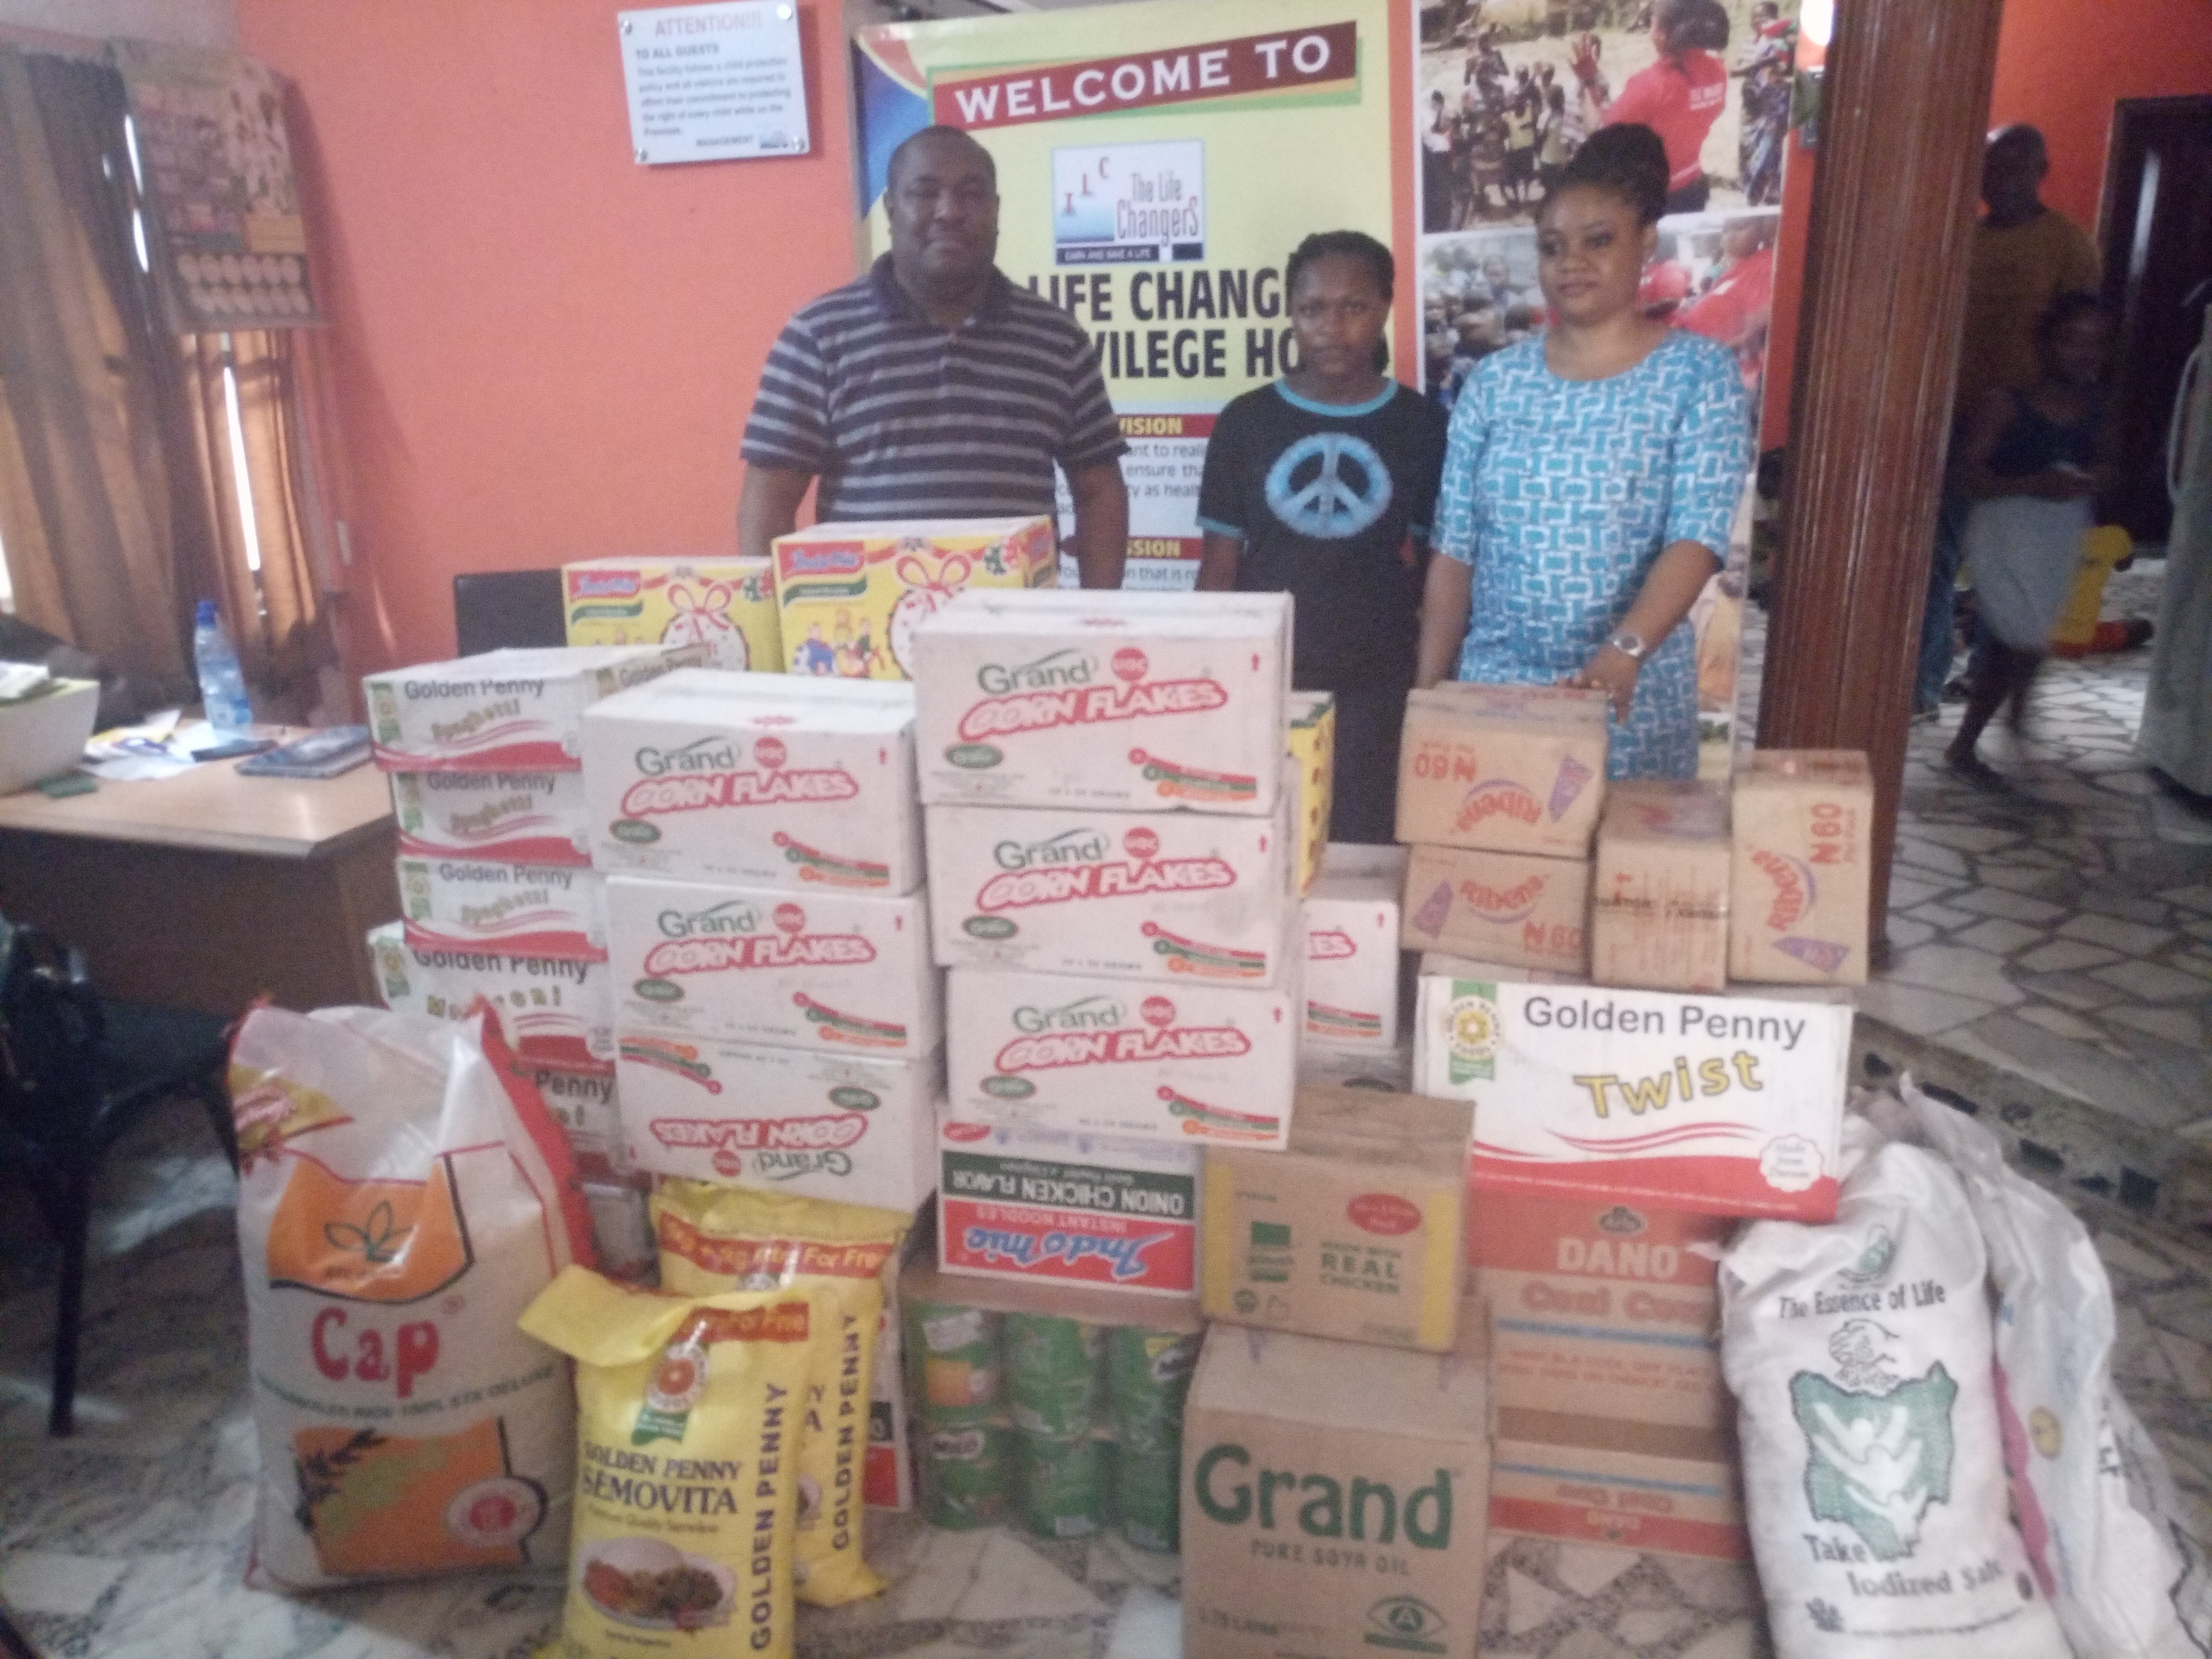 Festival Mall Amuwo Odofin donates items to Life Changers Orphanage